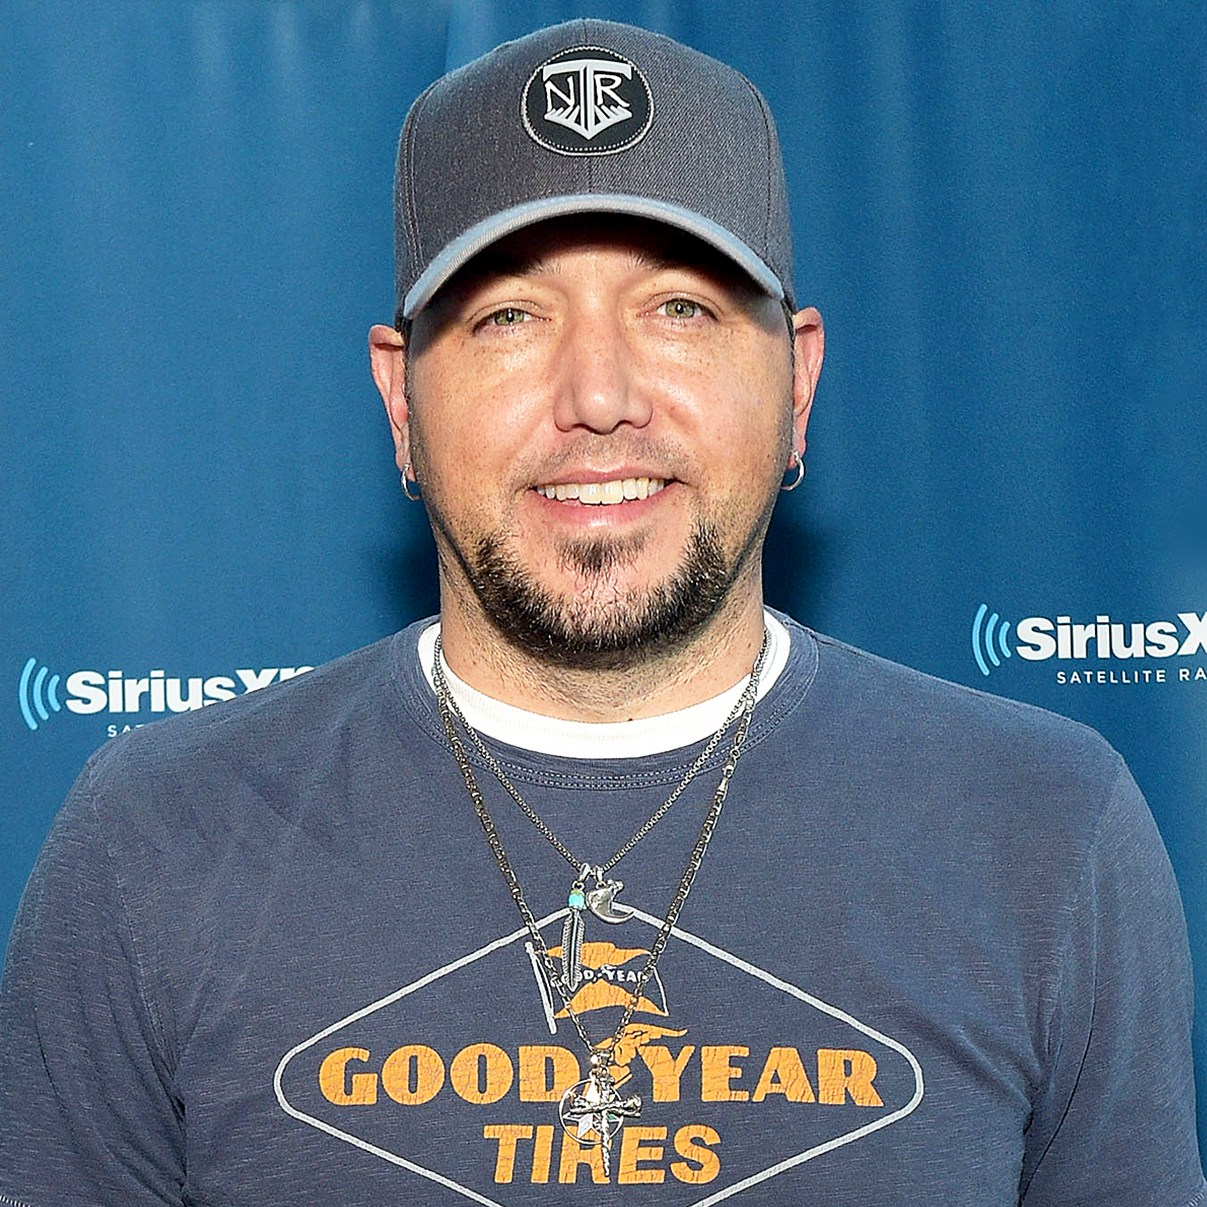 Jason Aldean visits the SiriusXM Studios on January 24, 2018 in Nashville, Tennessee.